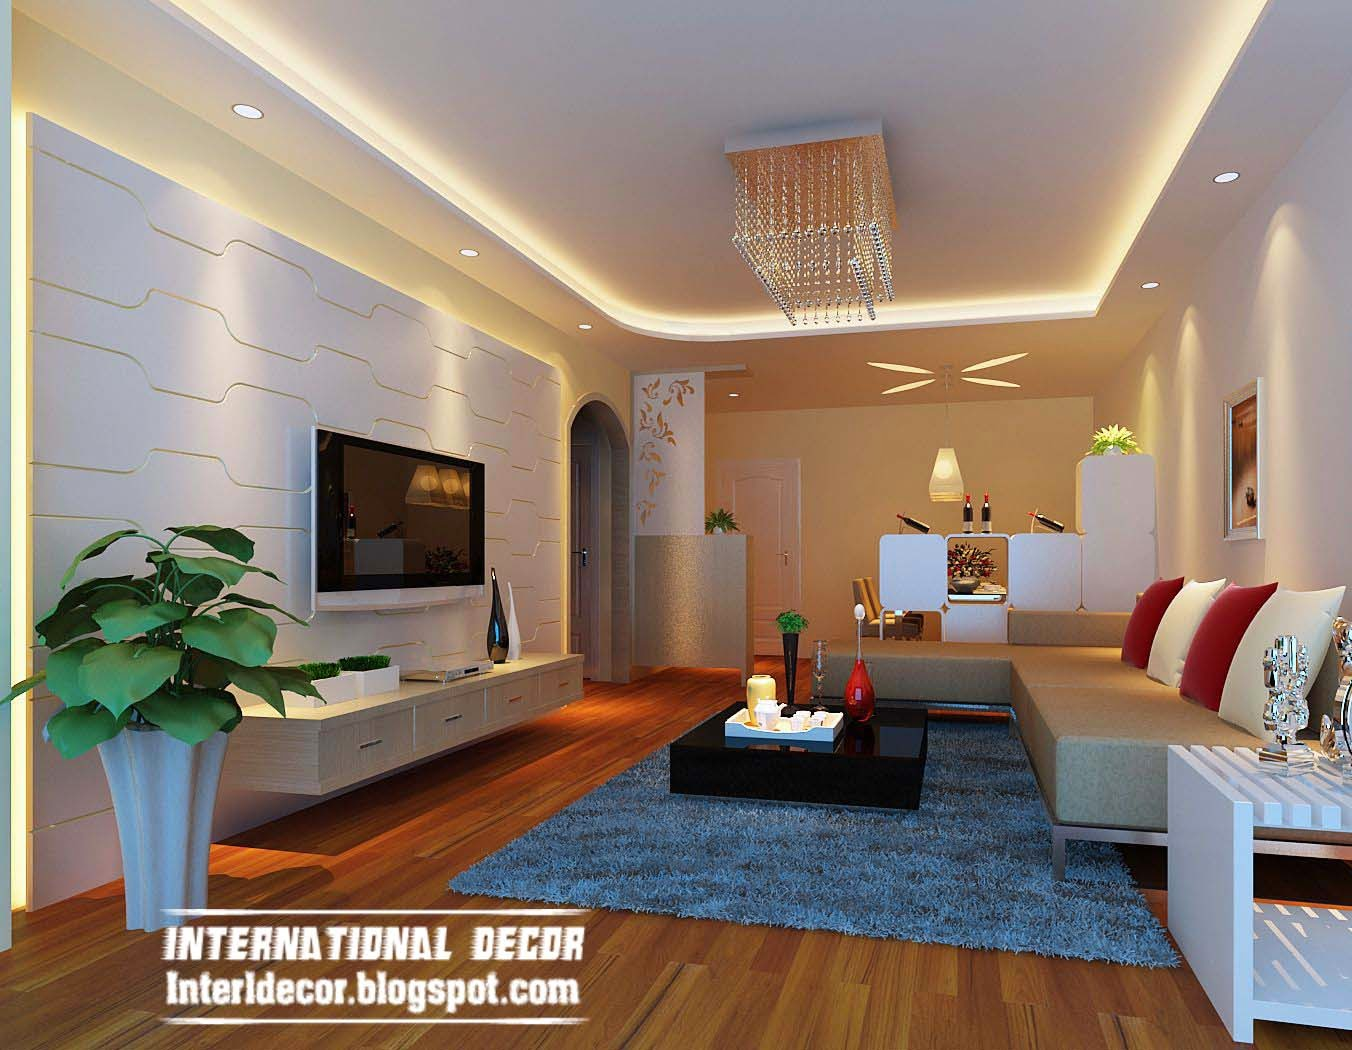 Interior design 2014 top 10 suspended ceiling tiles Dining room designs 2014